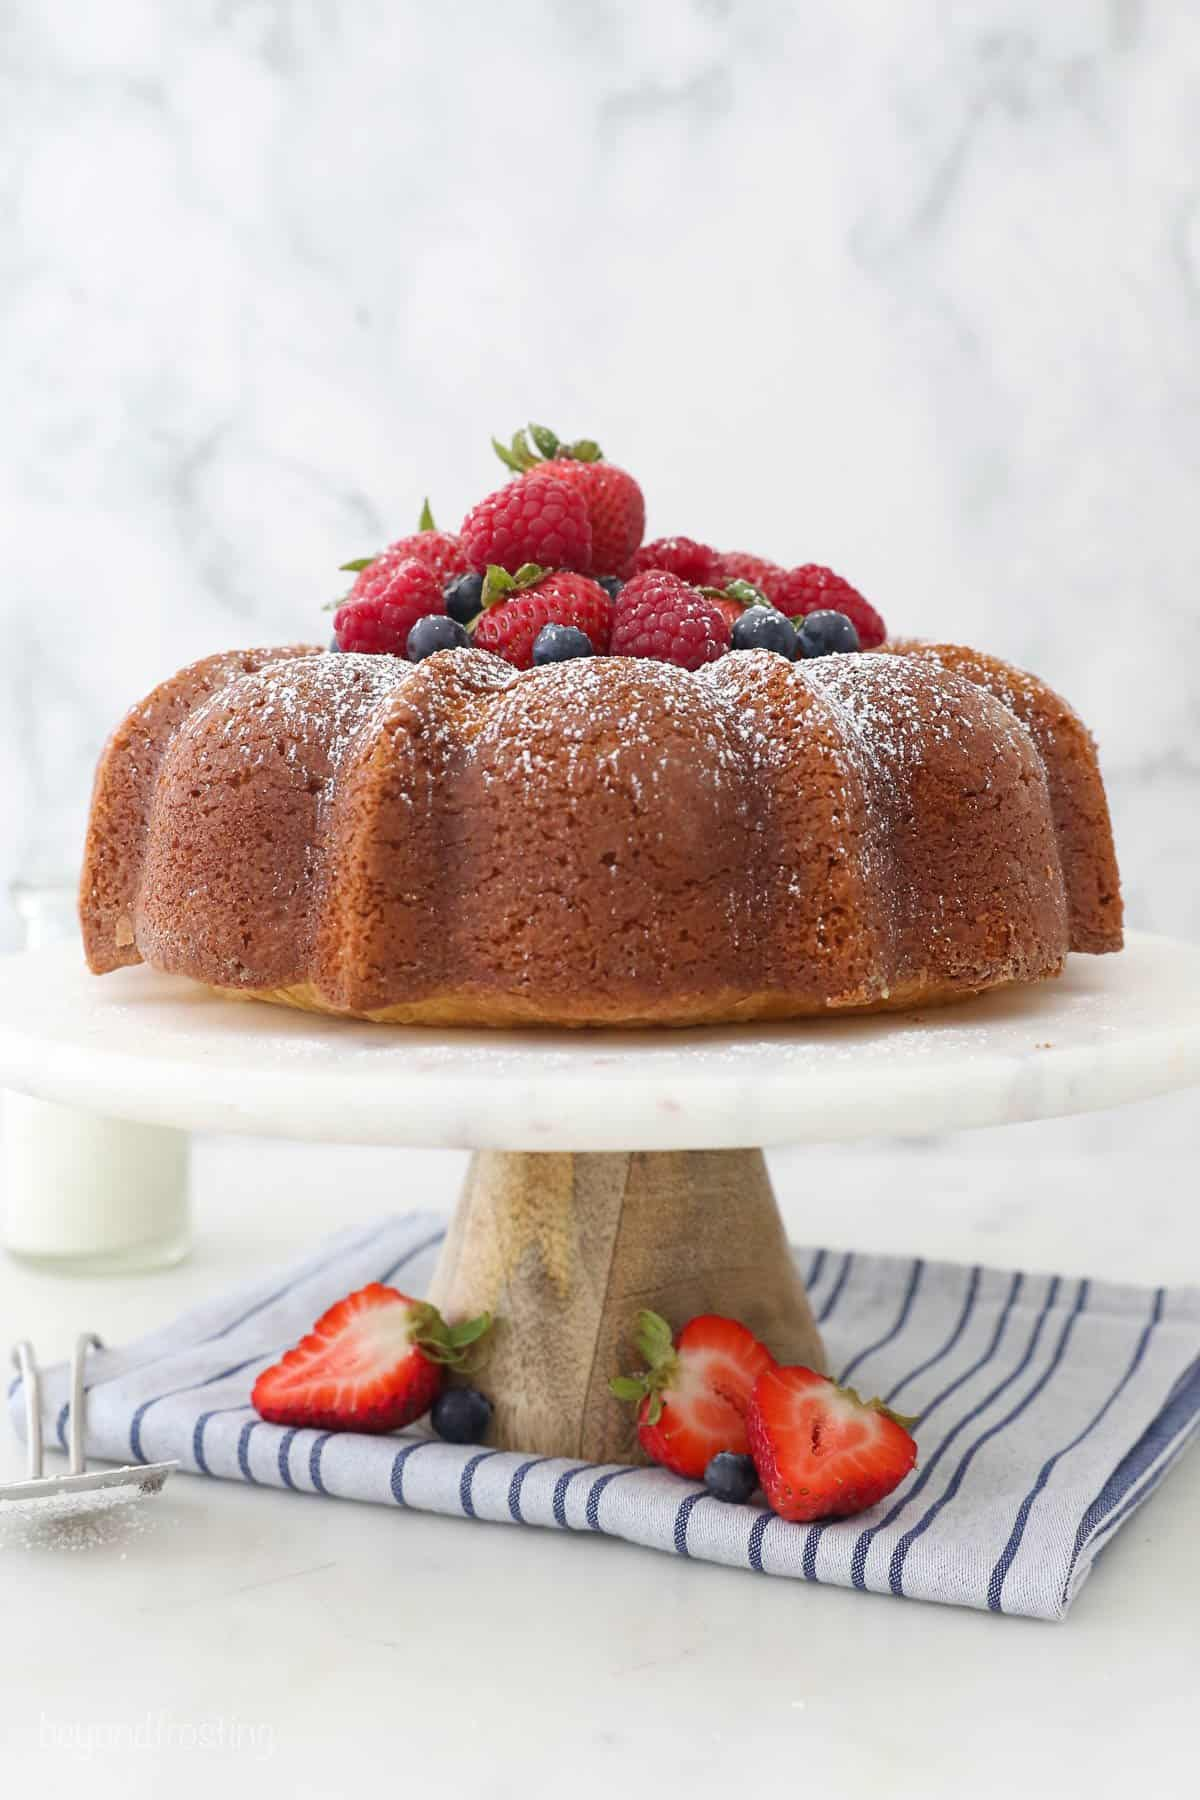 A pound cake on a cake platter topped with strawberries, blueberries and powdered sugar